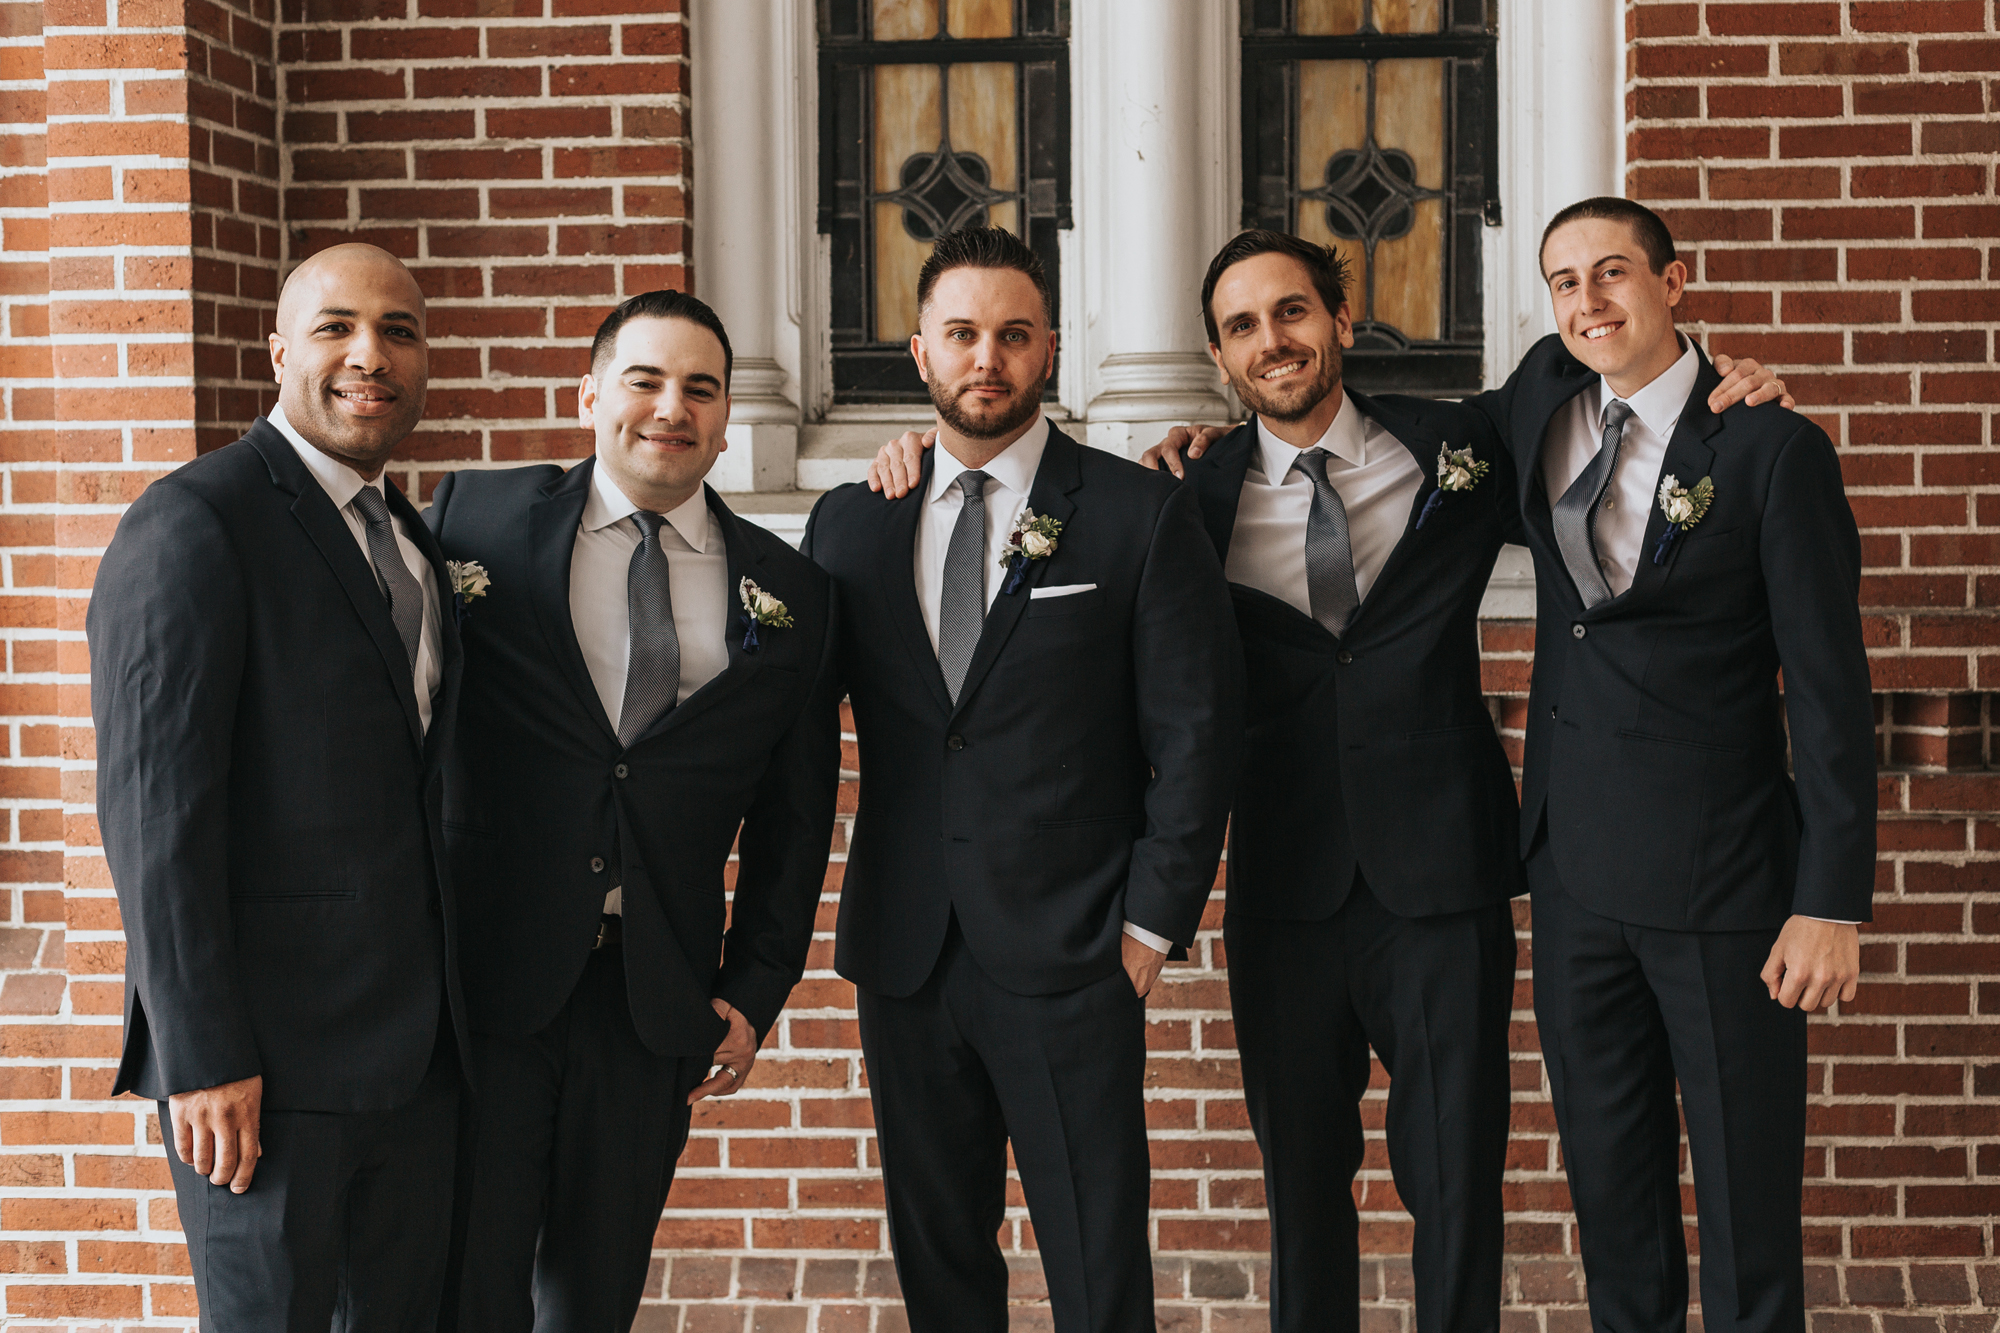 groomsmen-wedding-day-photography-neffs-church-pa